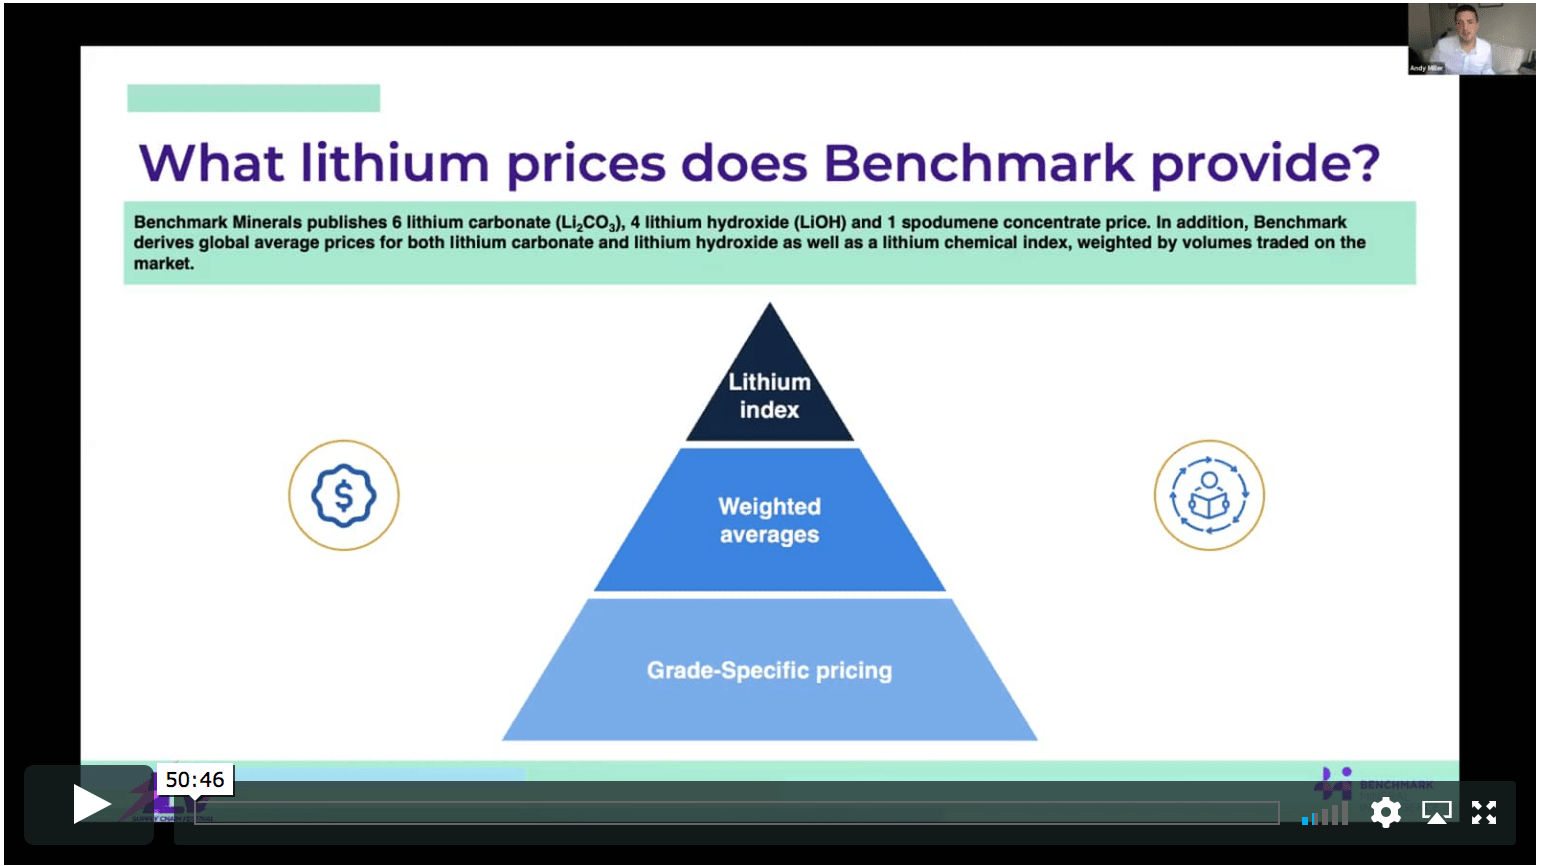 LITHIUM PRICES: HOW BENCHMARK SETS THE INDUSTRY'S PRICING AND THE WAYS THIS IS APPLIED